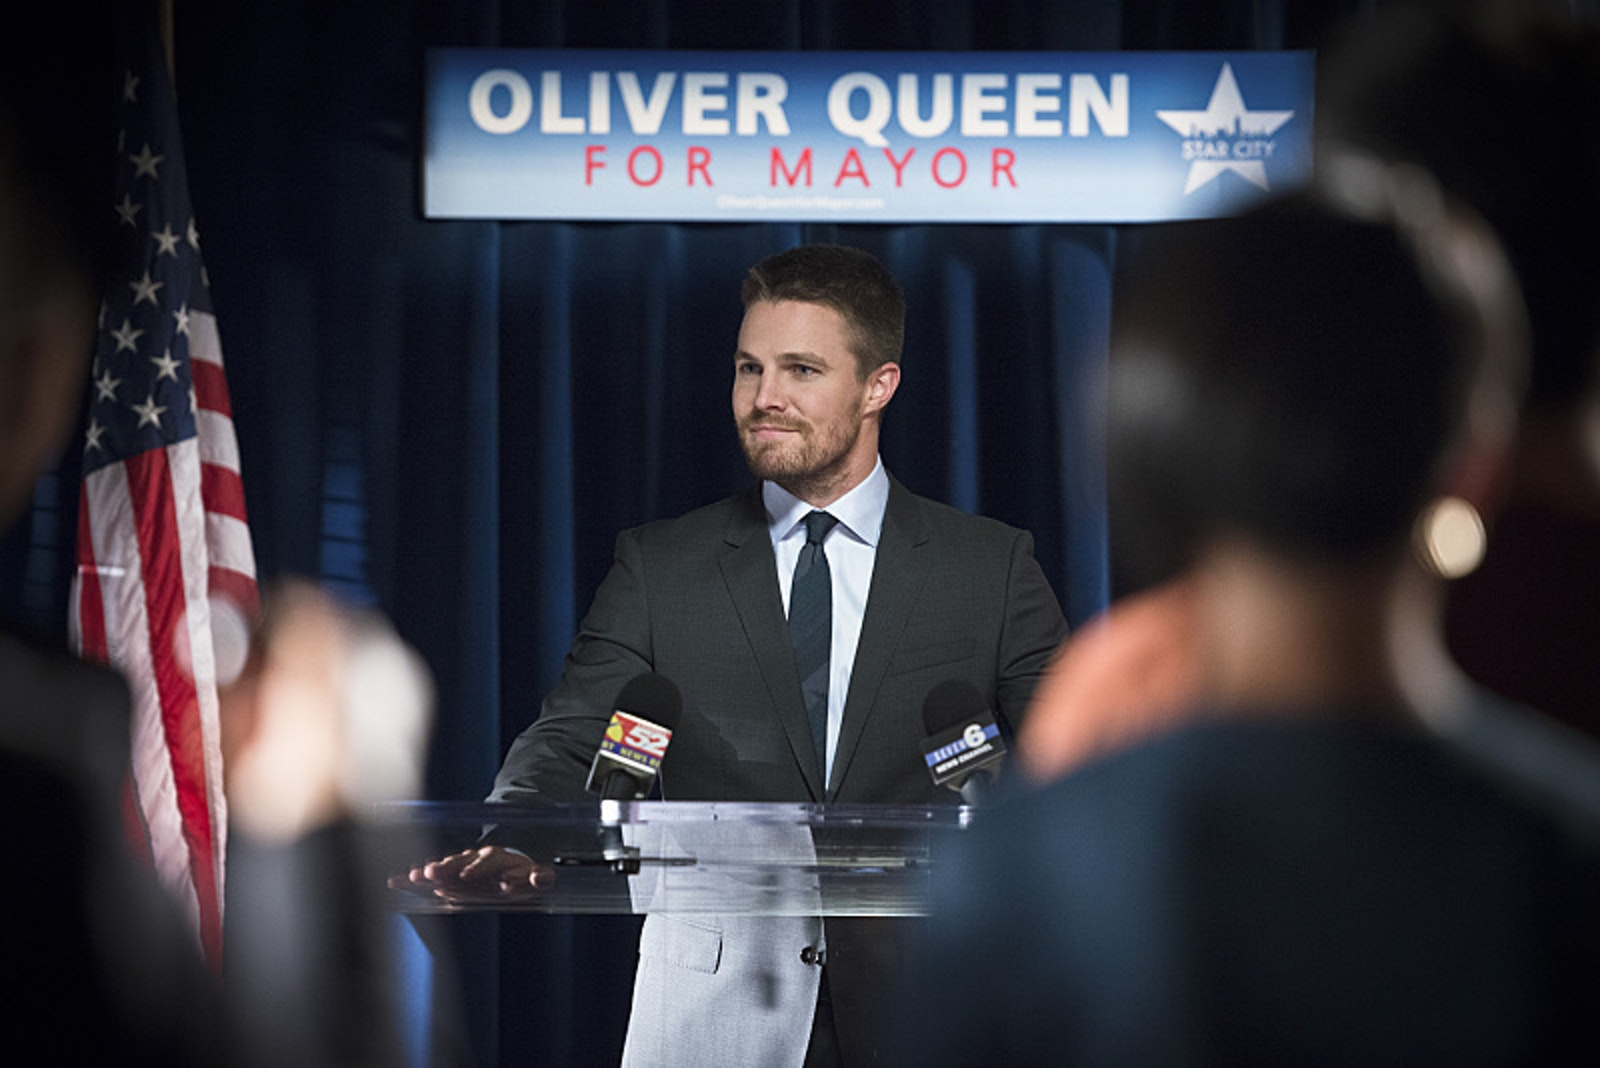 Stephen Amell's Oliver Queen became the mayor of Star City at the end of 'Arrow' Season 4.